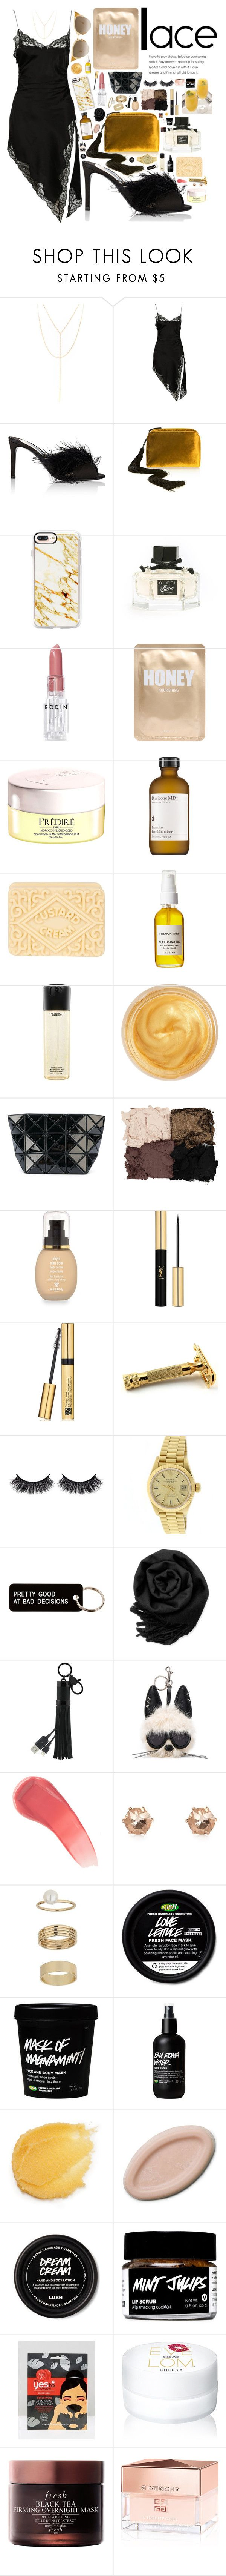 """""""Lusty Lace Lady"""" by imaniasaboor ❤ liked on Polyvore featuring South Moon Under, Alexander Wang, Prada, The Row, Casetify, Gucci, Rodin, Lapcos, Prédiré Paris and Perricone MD"""